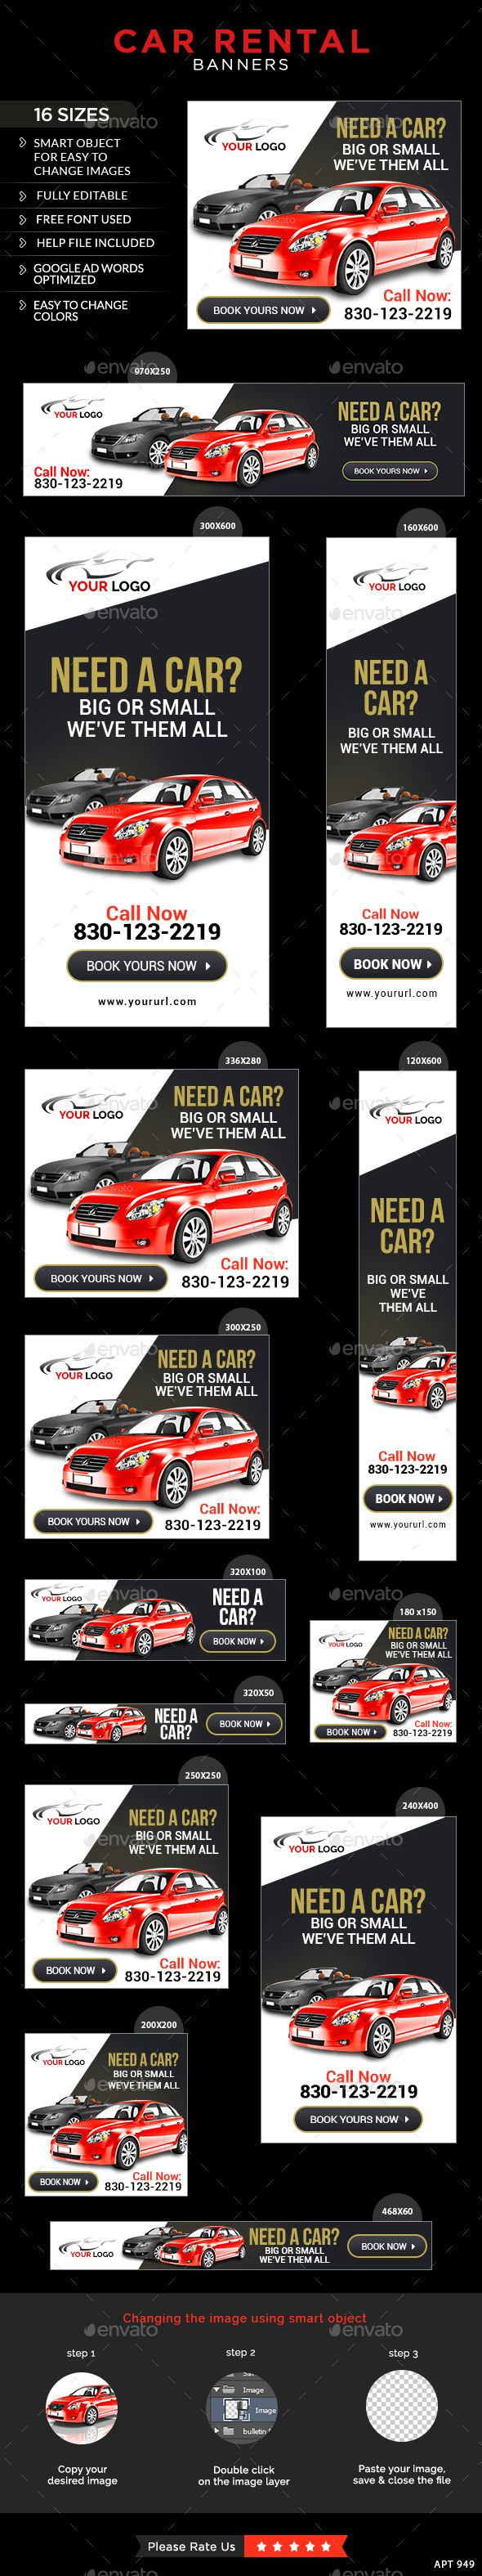 Car Rental Banners & Ads Web Template PSD. Download here: http://graphicriver.net/item/car-rental-banners/13363380?s_rank=1779&ref=yinkira